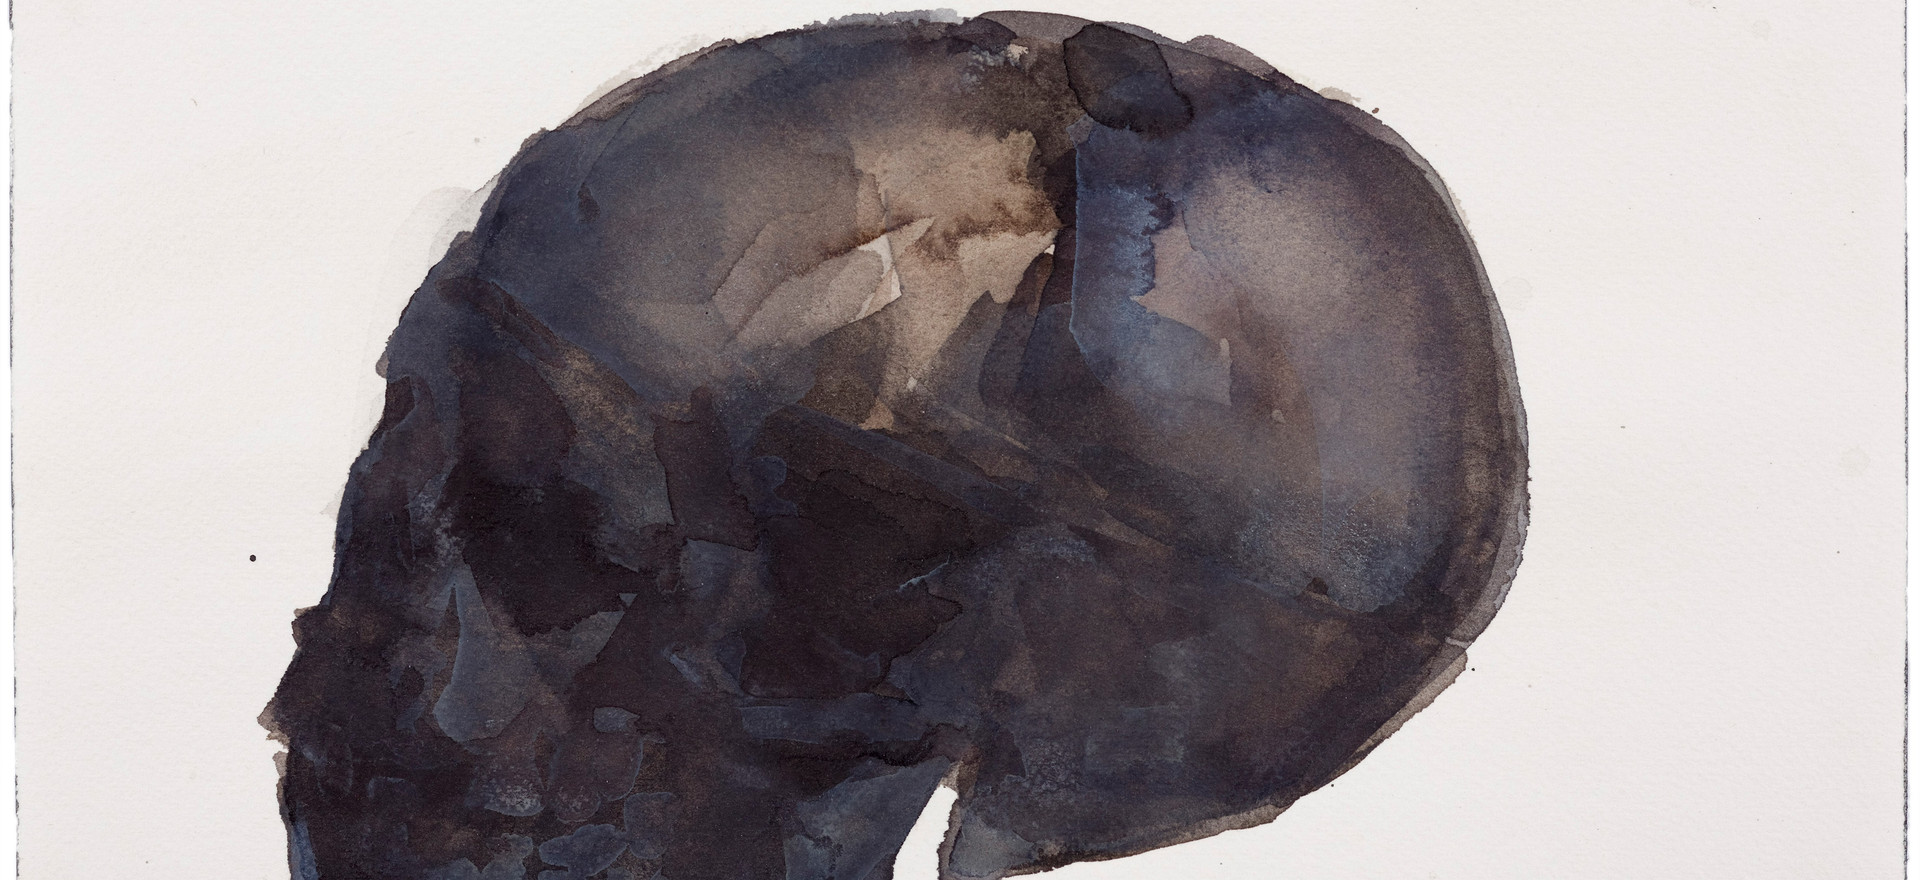 'Skull Series', 2013, watercolour on paper, 15 x 30 cm